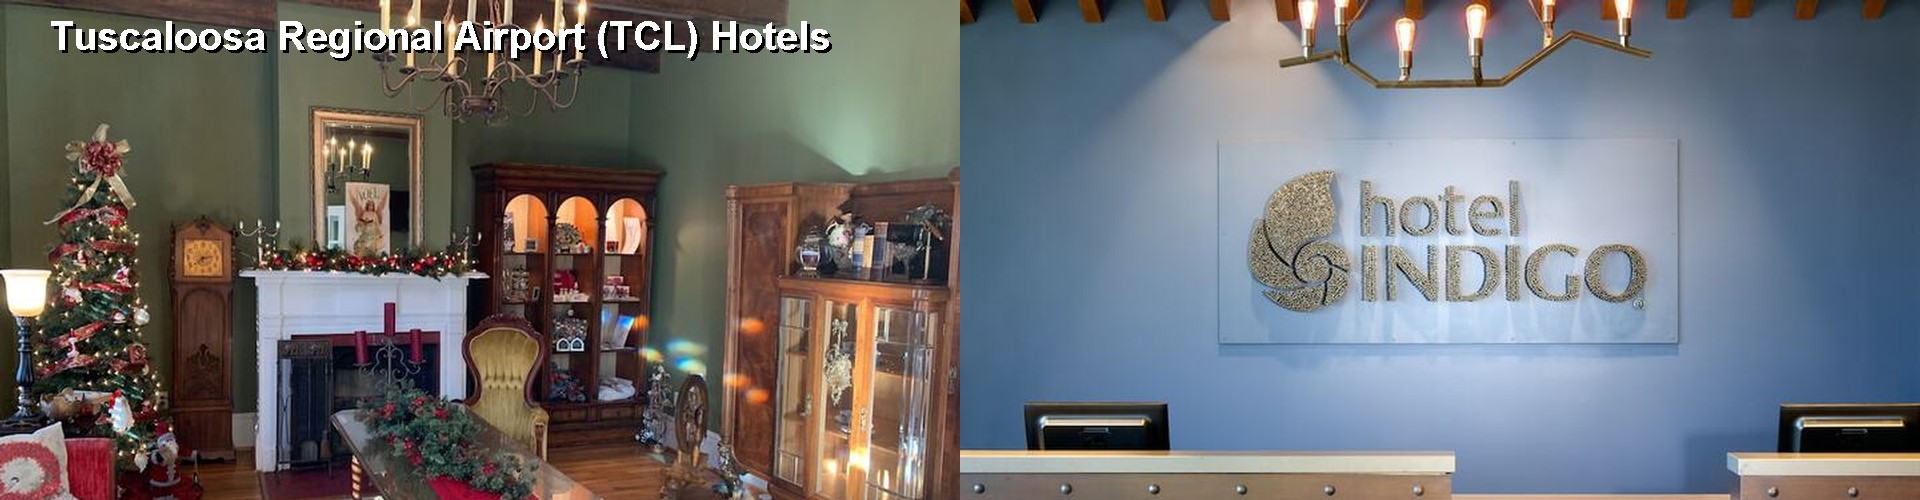 5 Best Hotels near Tuscaloosa Regional Airport (TCL)